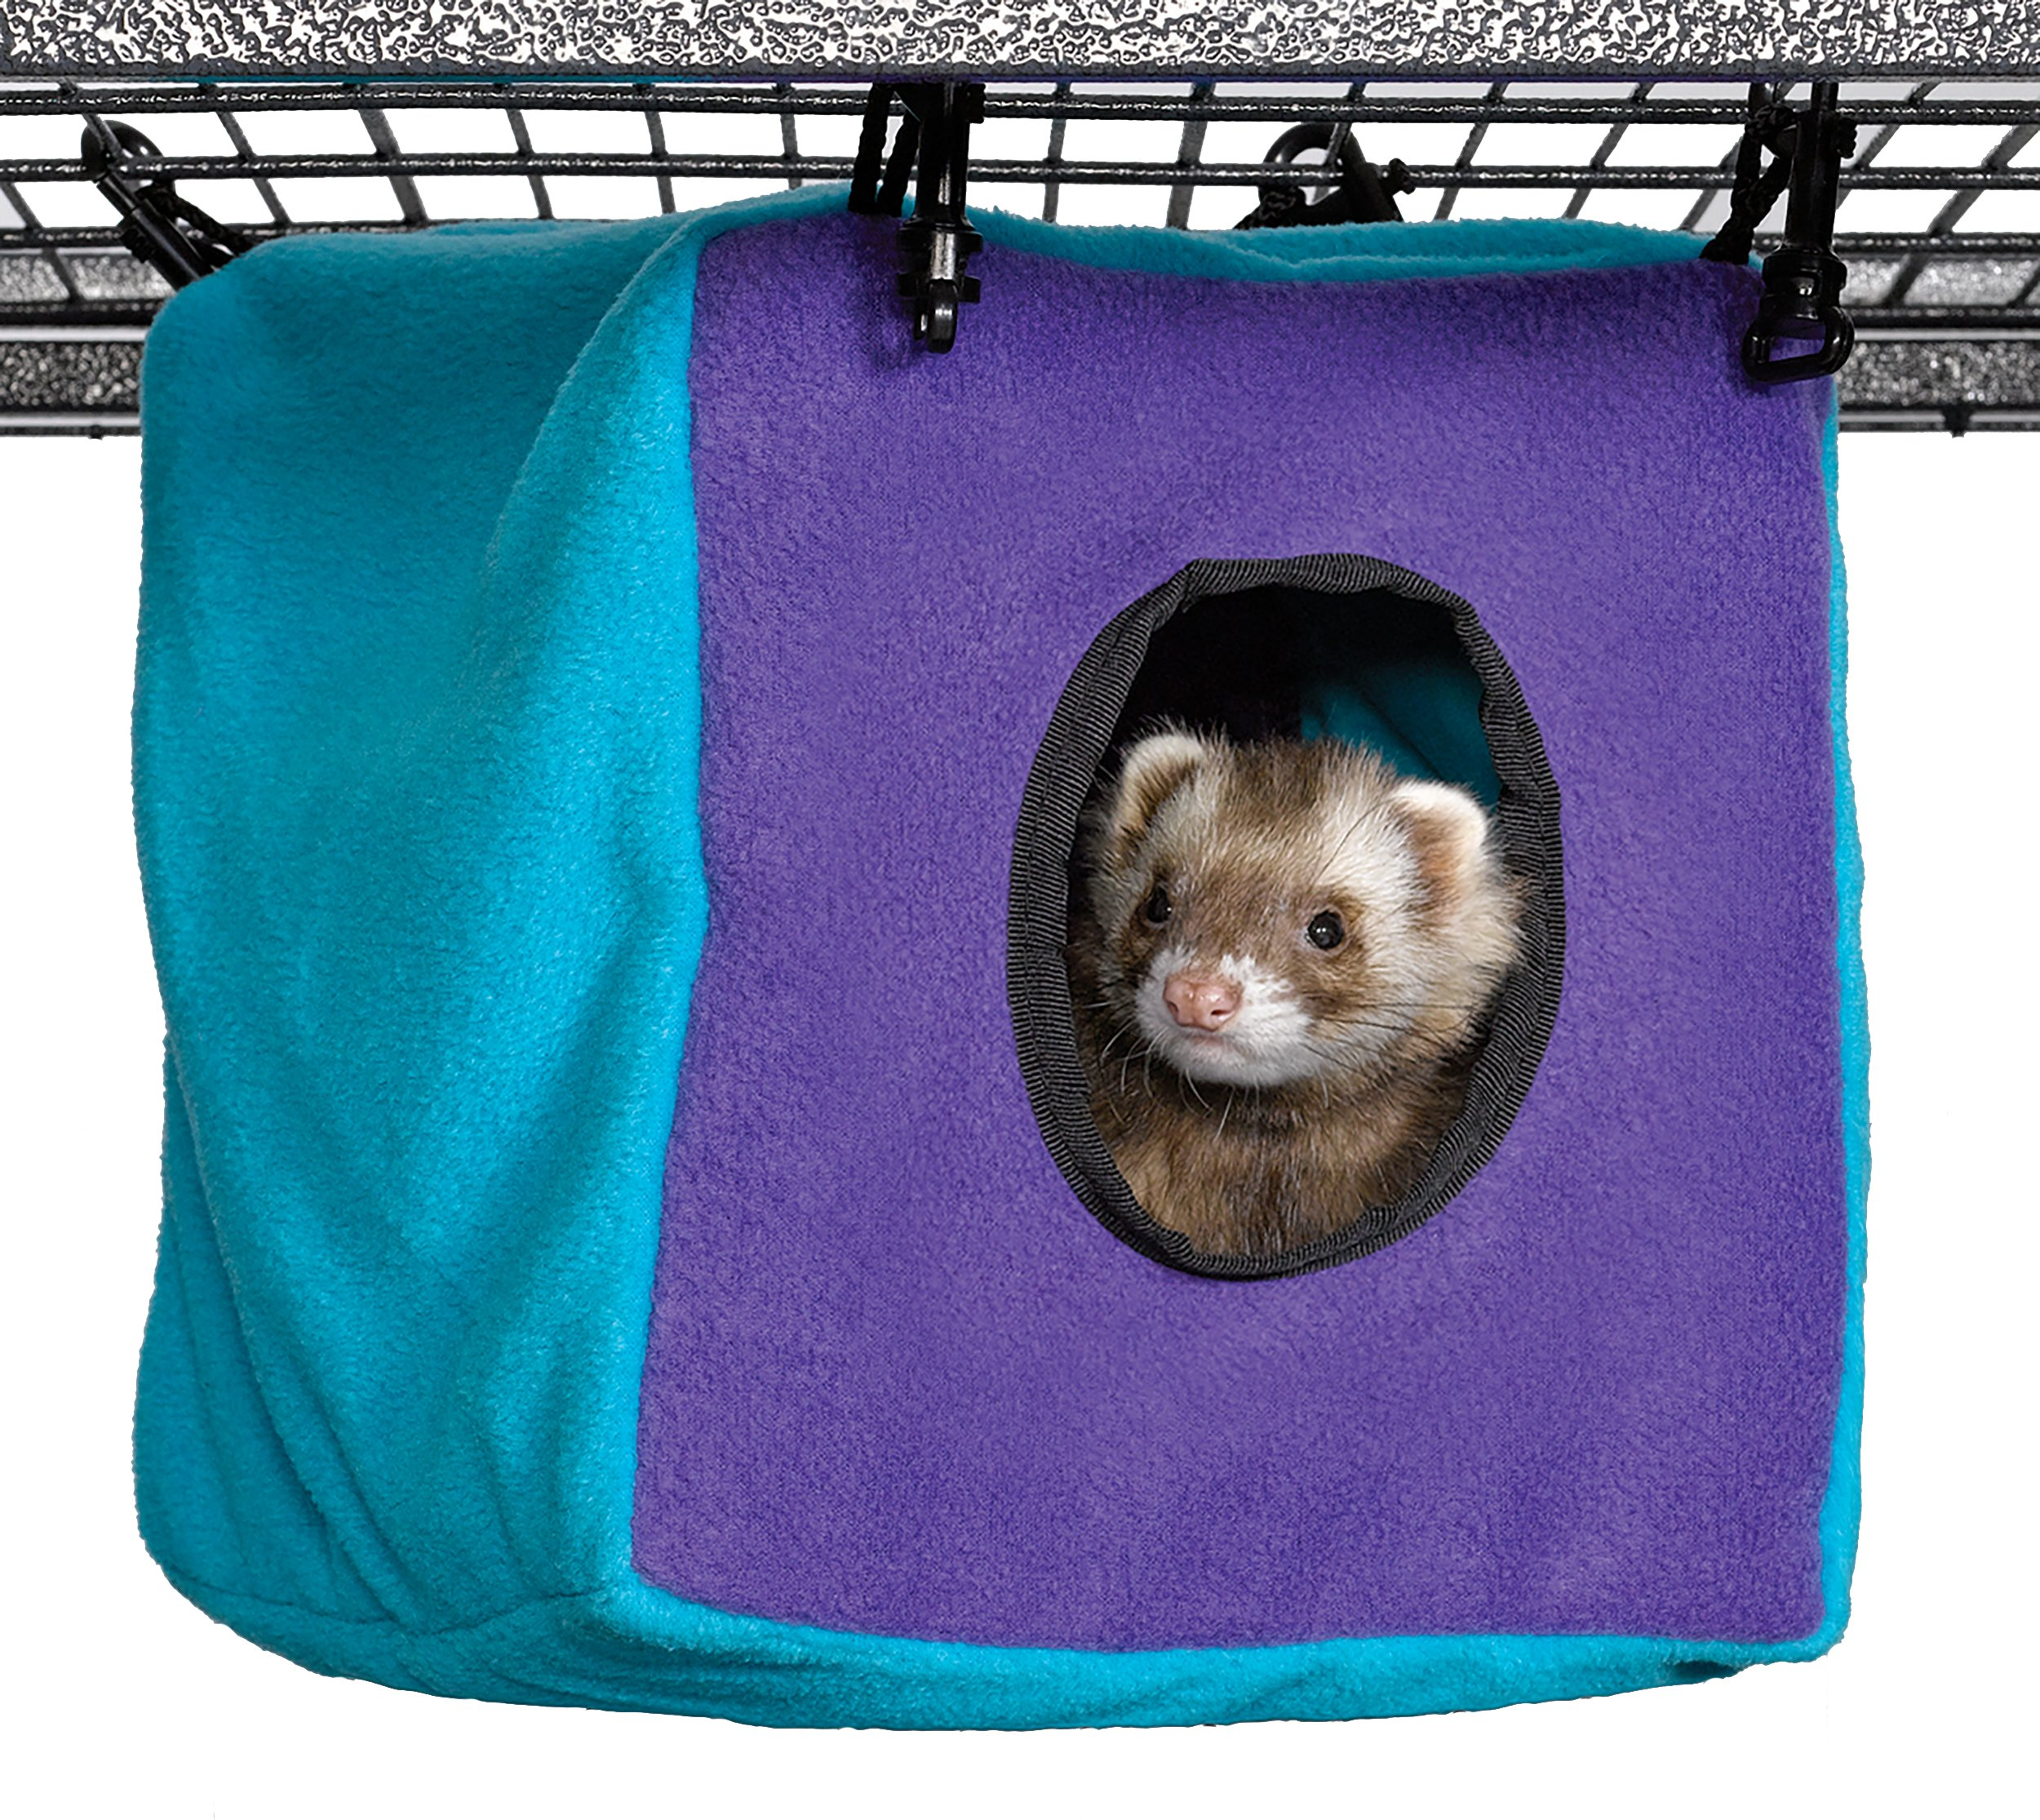 MidWest Homes for Pets Ferret Nation Cozy Cube for Ferret Nation & Critter Nation Small Animal Cages | Measures 8.5L x 8.5W x 9H - Inches